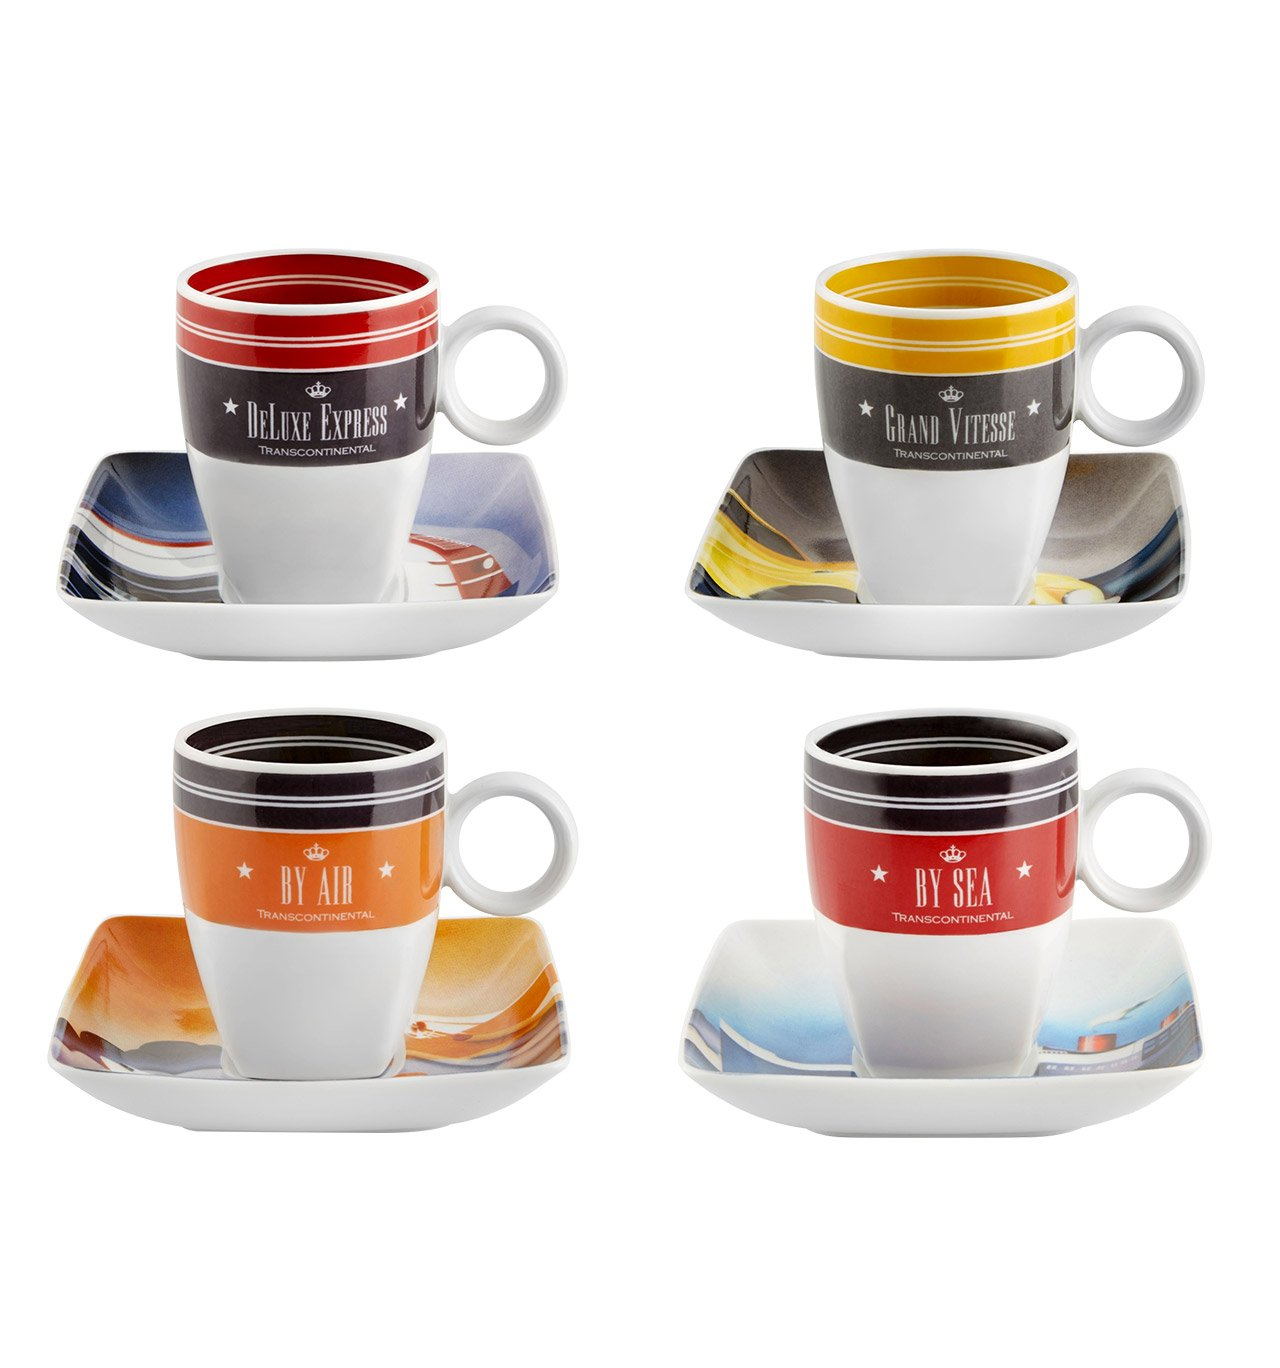 VISTA ALEGRE - Transcontinental (Ref # 21122115) Porcelain Set of 4 Espresso Coffee Cups & Saucers by Unknown